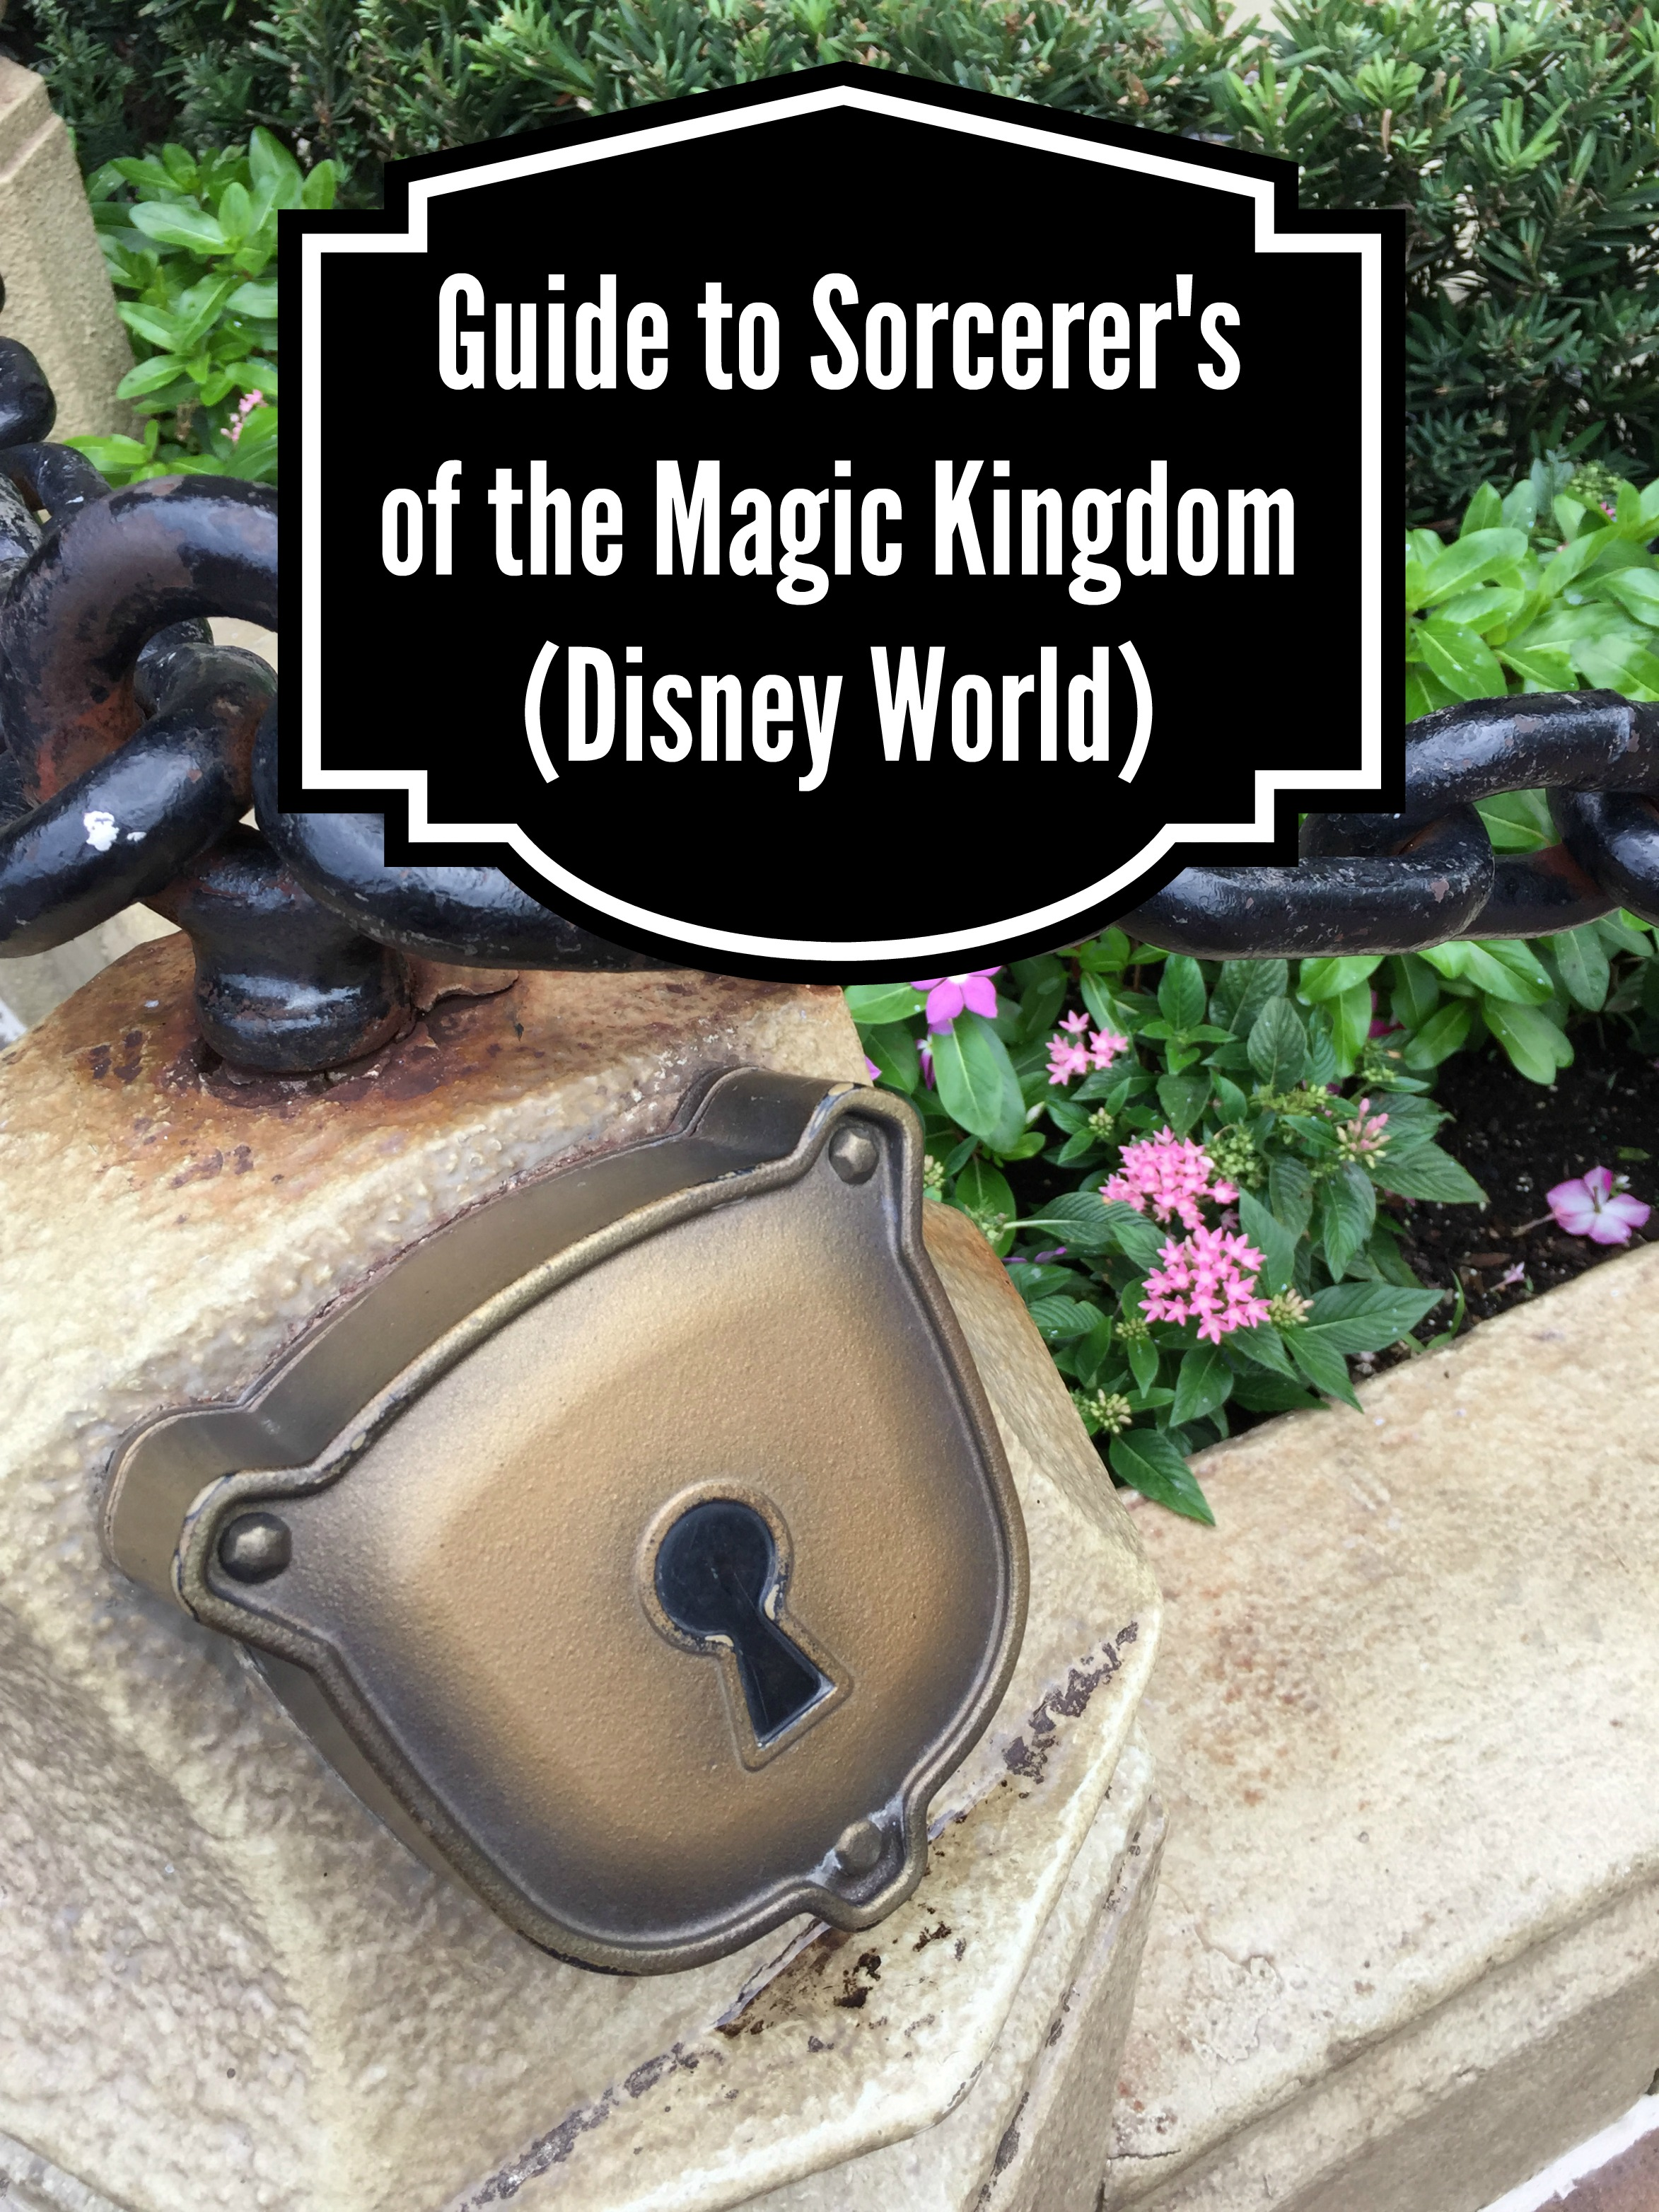 Sorcerer's of the Magic Kingdom